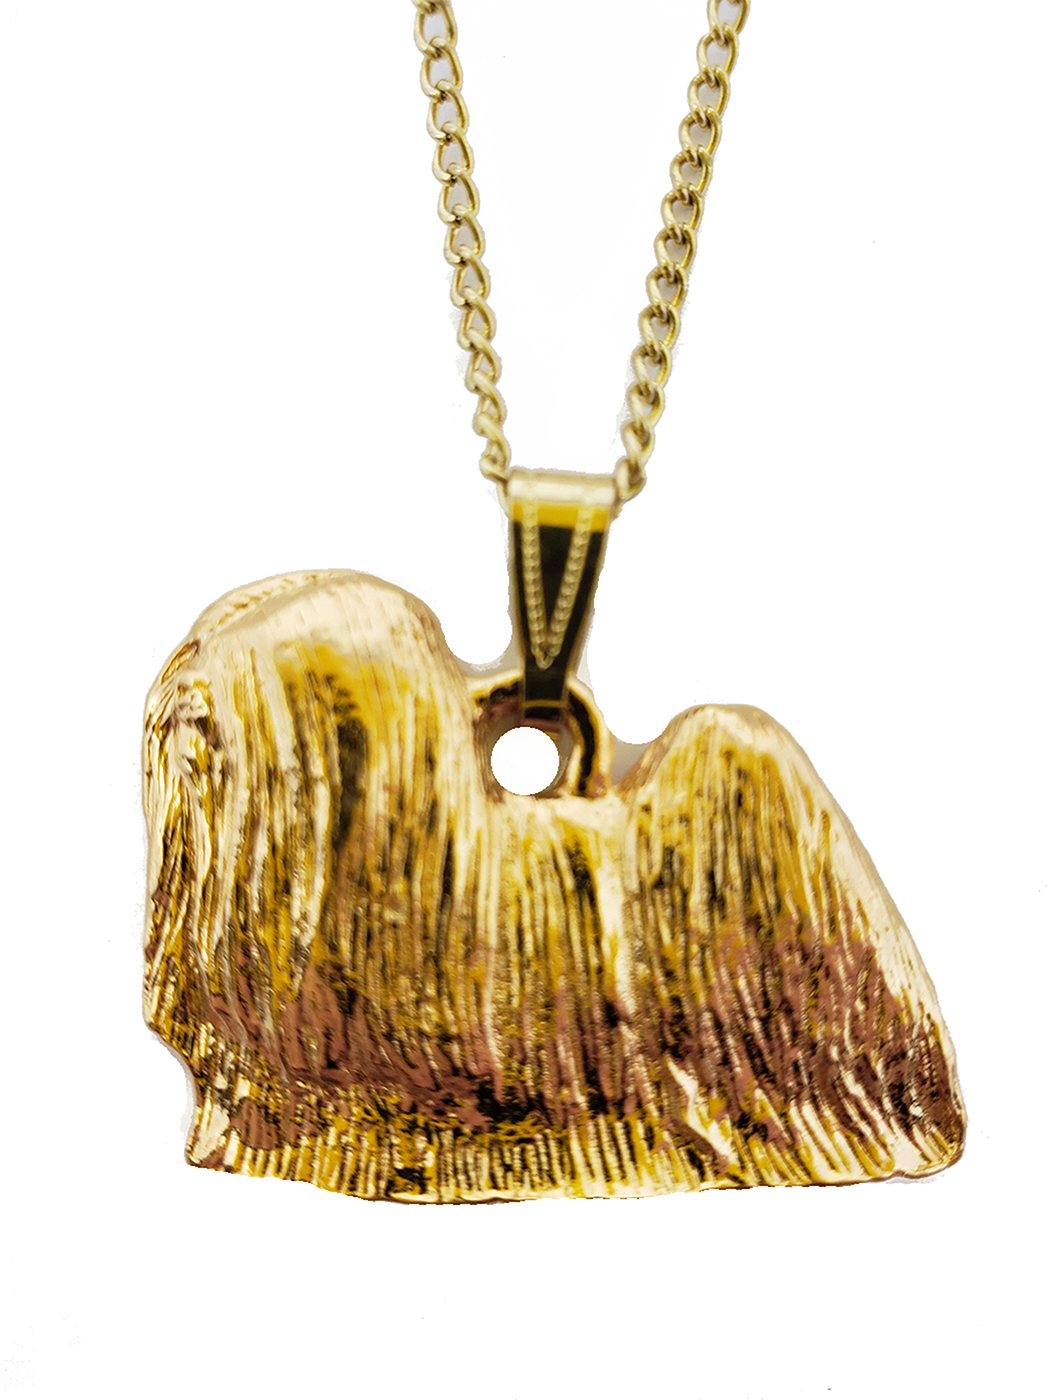 Lhasa Apso 24K Gold Plated Pendant with Necklace